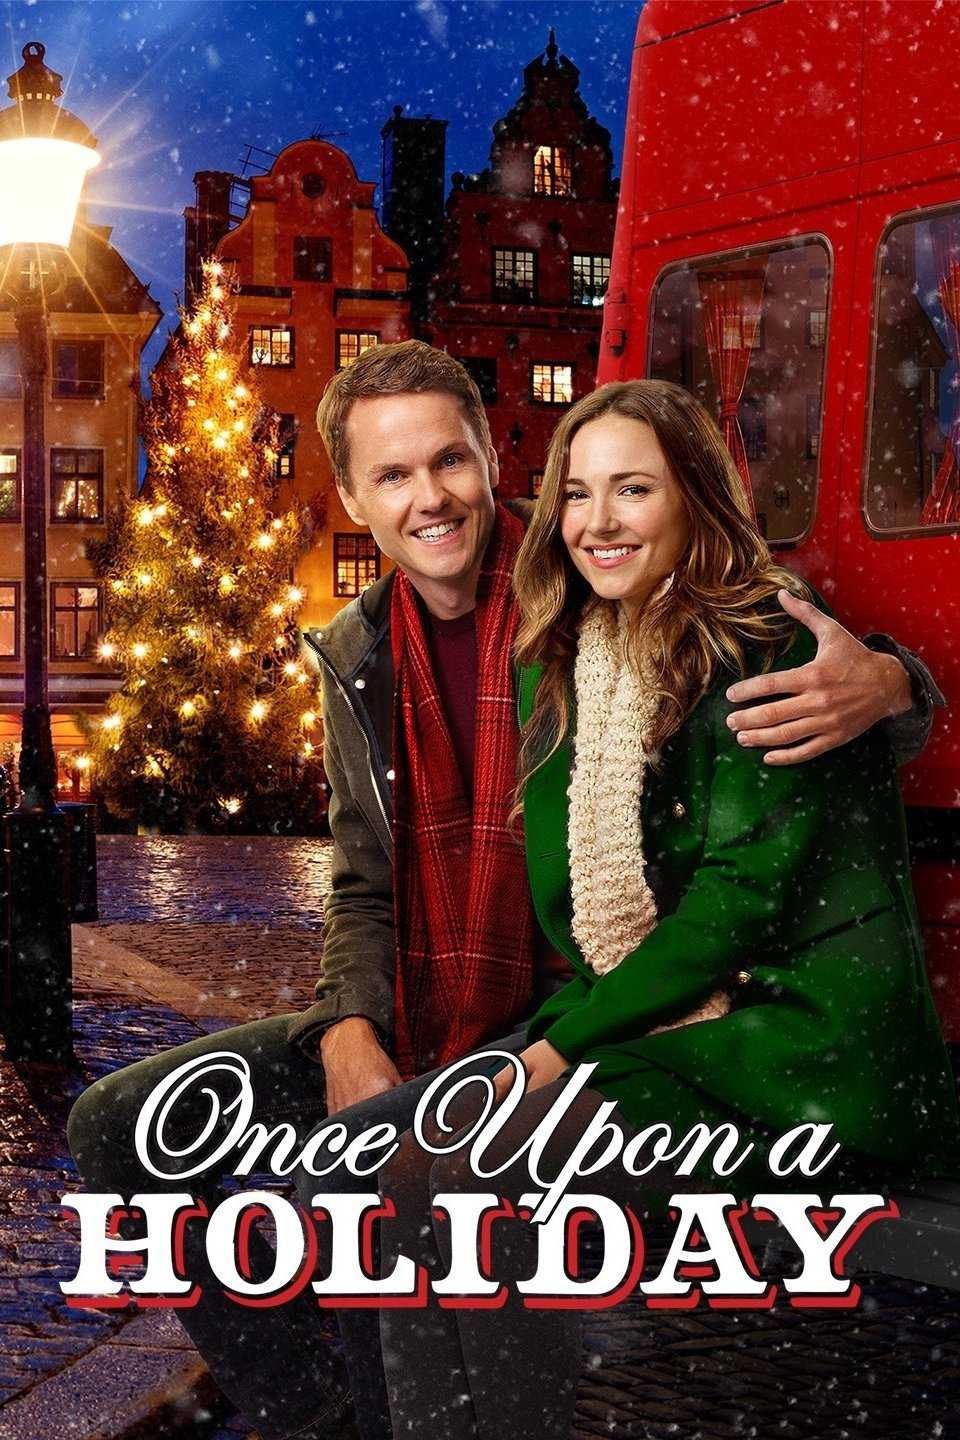 20185 Once Upon a Holiday (2015) Holiday movie, Full